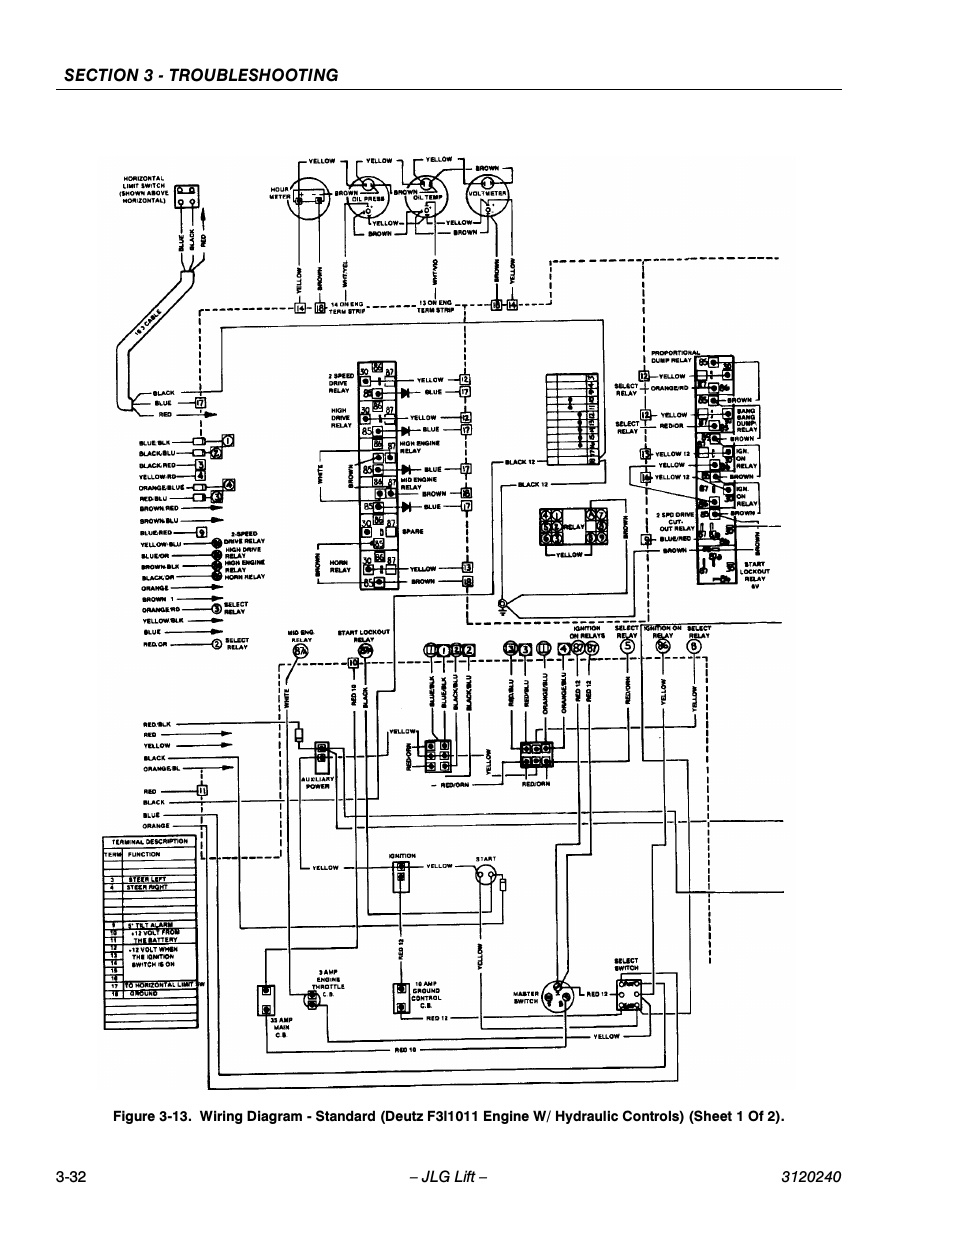 elevator wiring diagram pdf Collection-Deutz Wiring Diagram New Generous Jlg Scissor Lift Control Box Wire Electrical 14-c